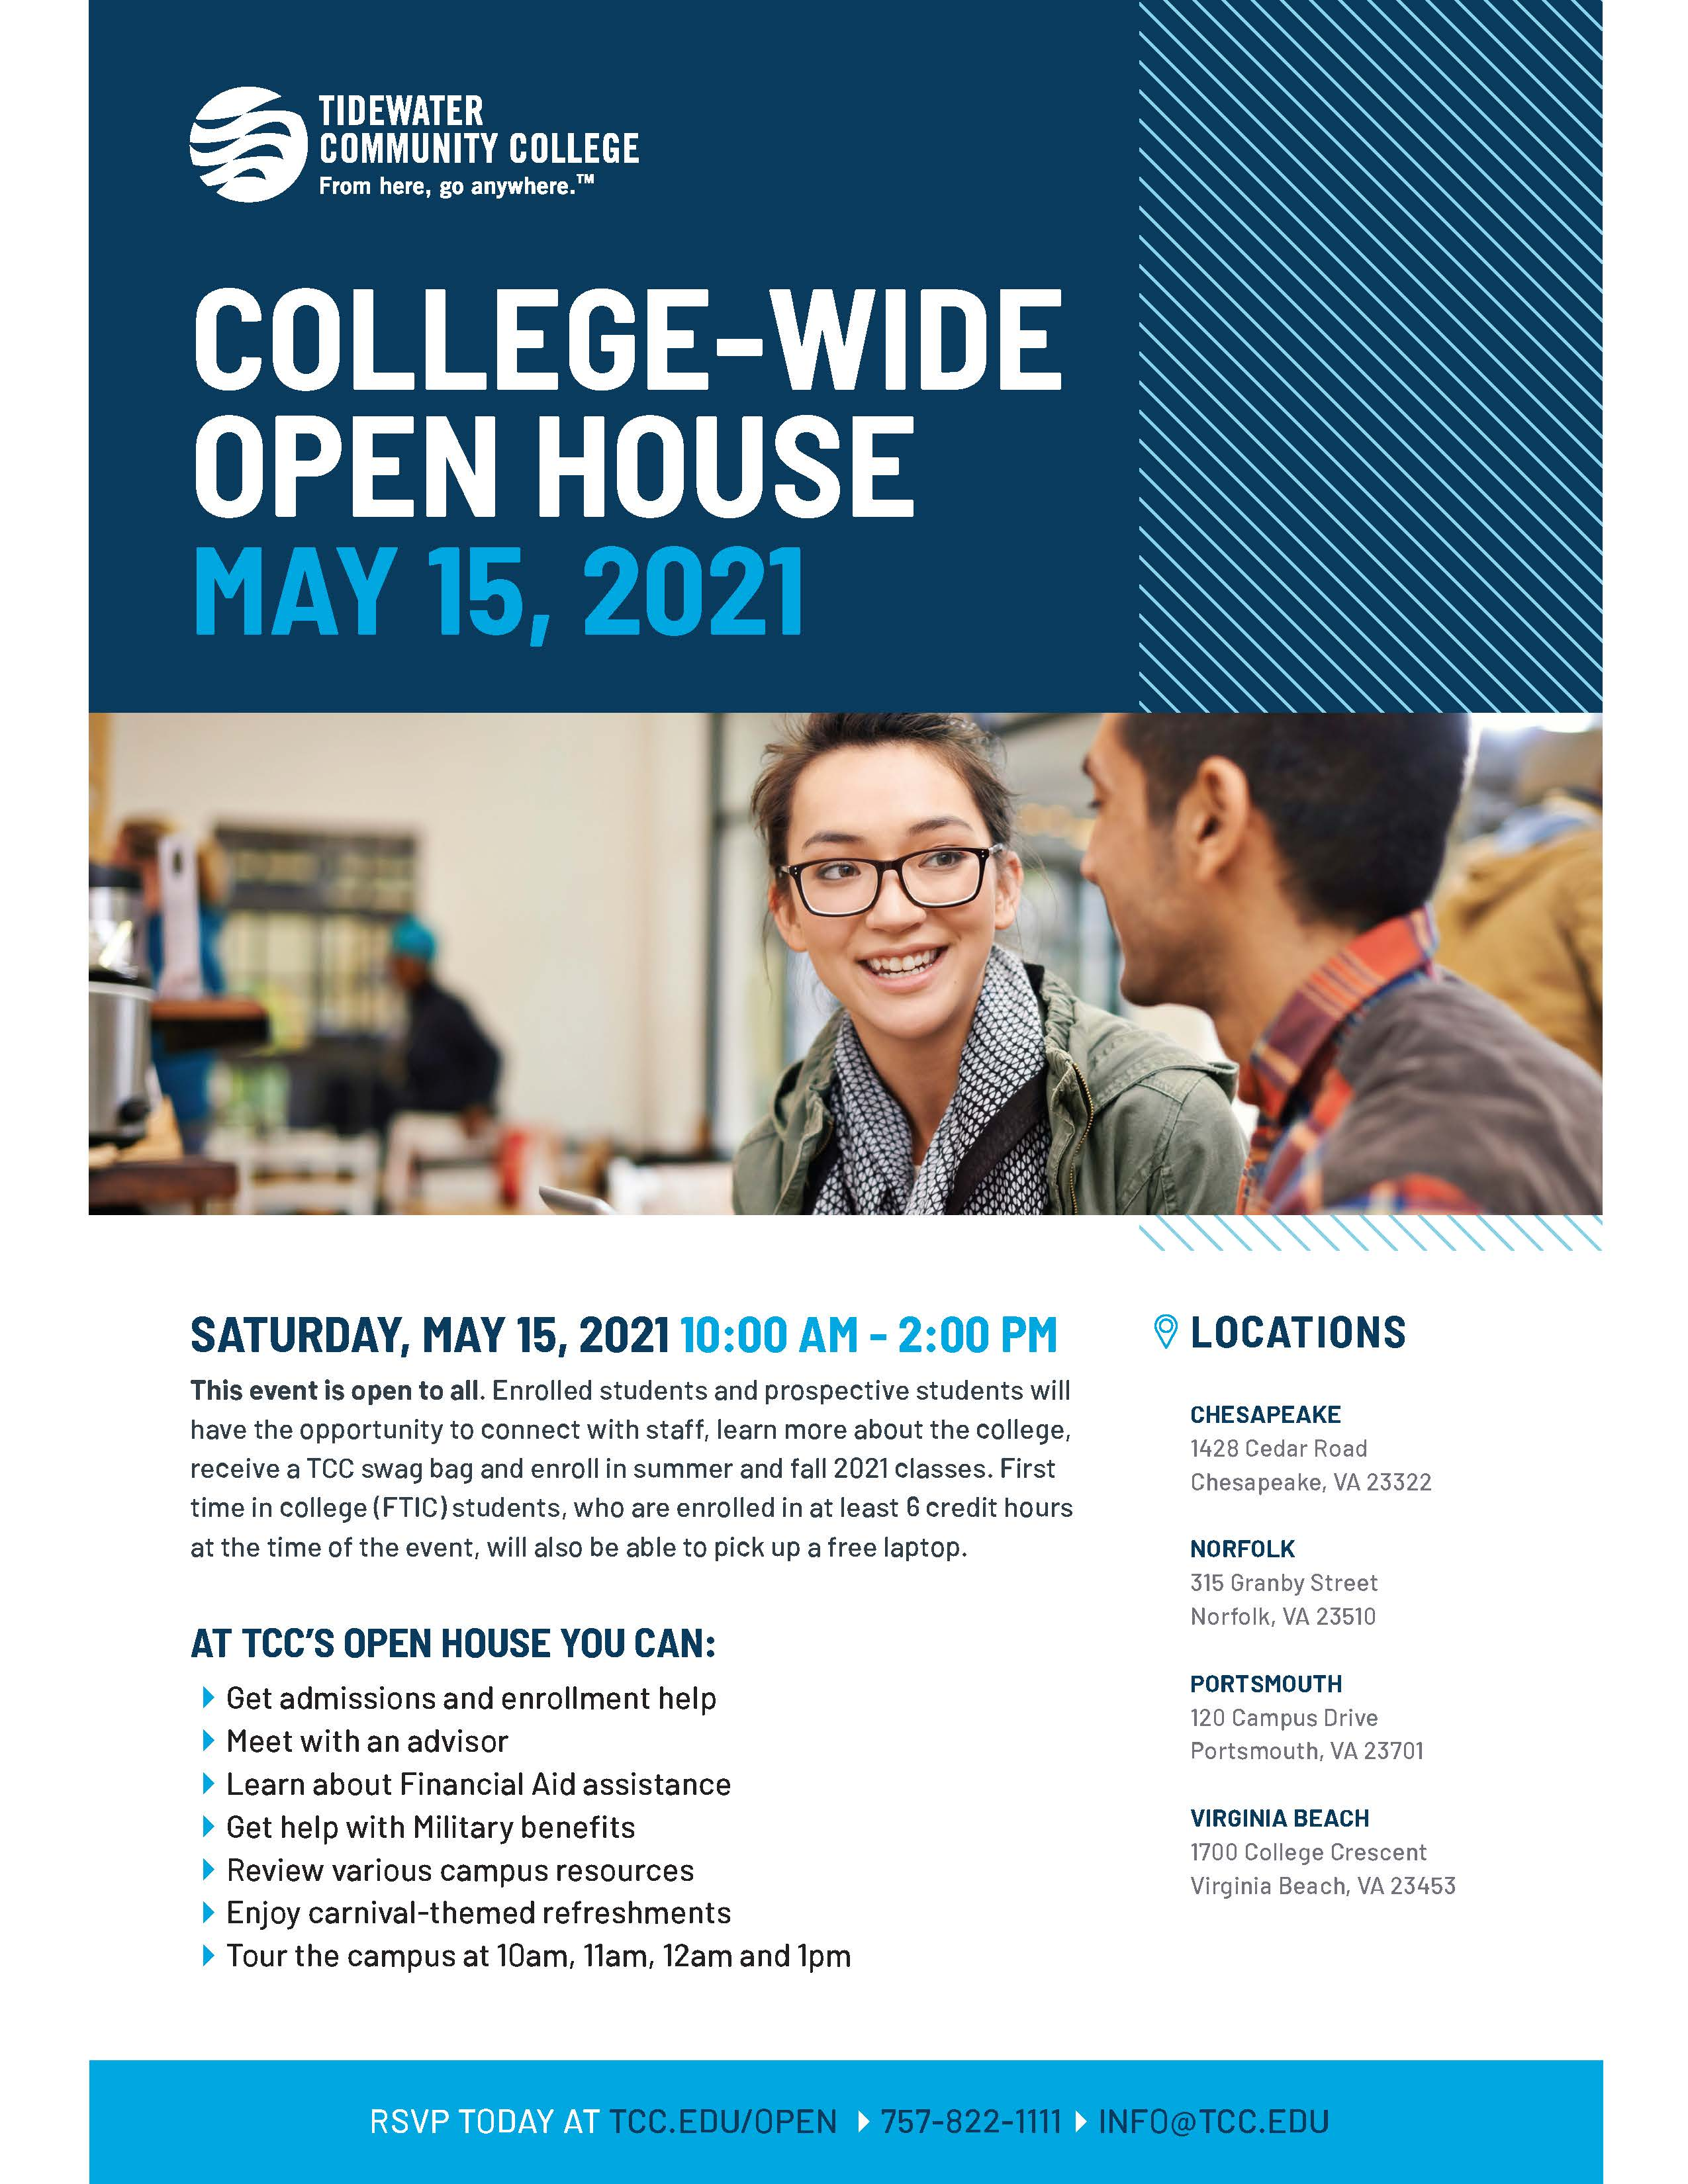 Tidewater Community College Open House